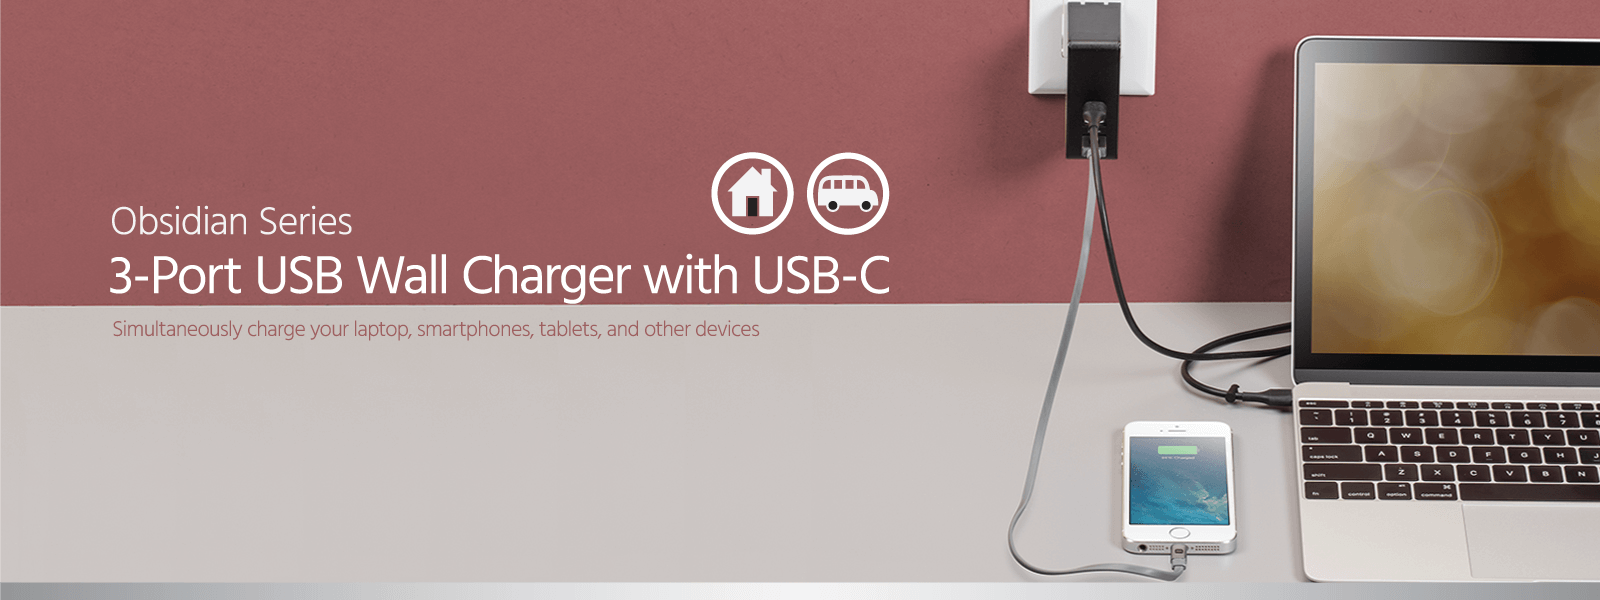 3-Port USB Wall Charger with USB-C